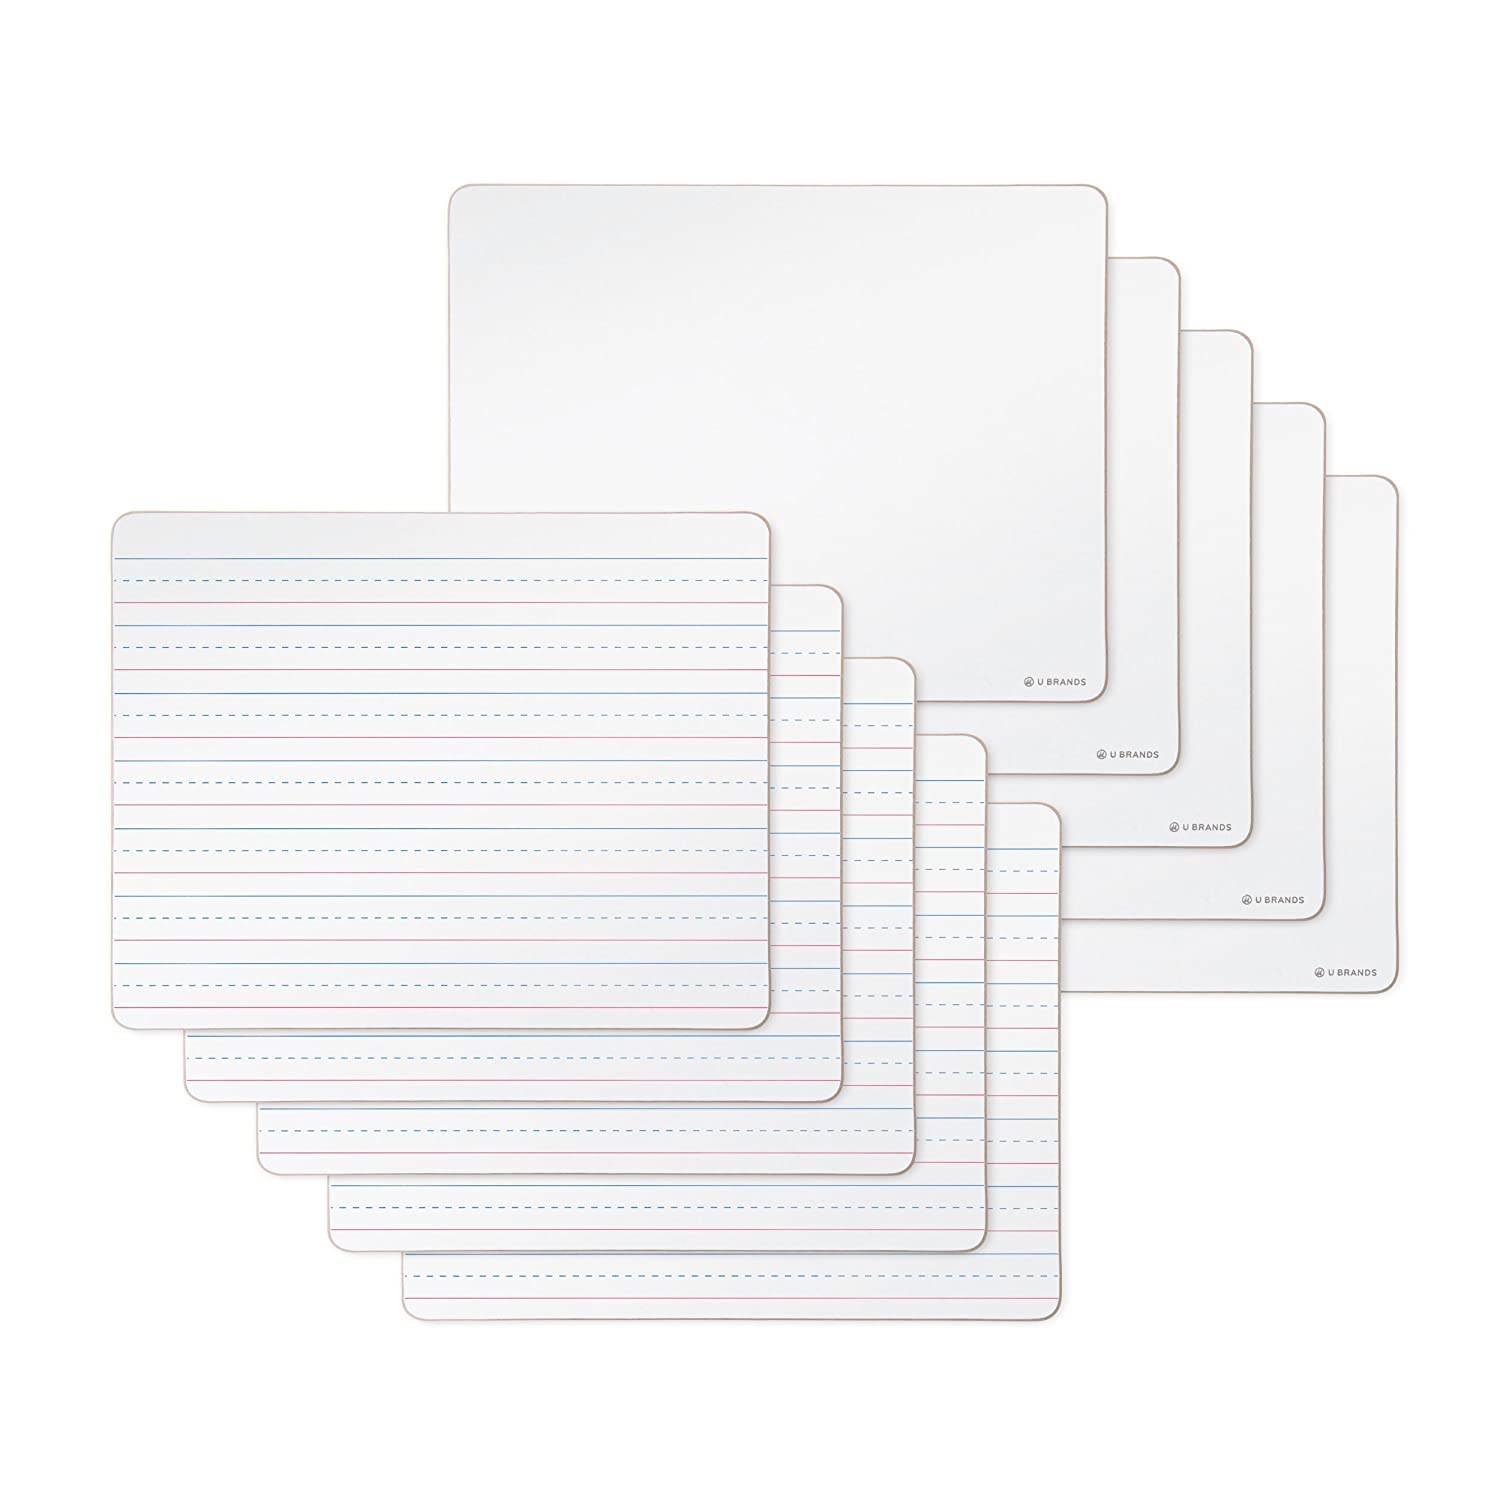 U Brands Dry Erase Lap Boards, Double Sided, Ruled and Plain, 9 X 12-Inch, 10-Pack 483U00-01